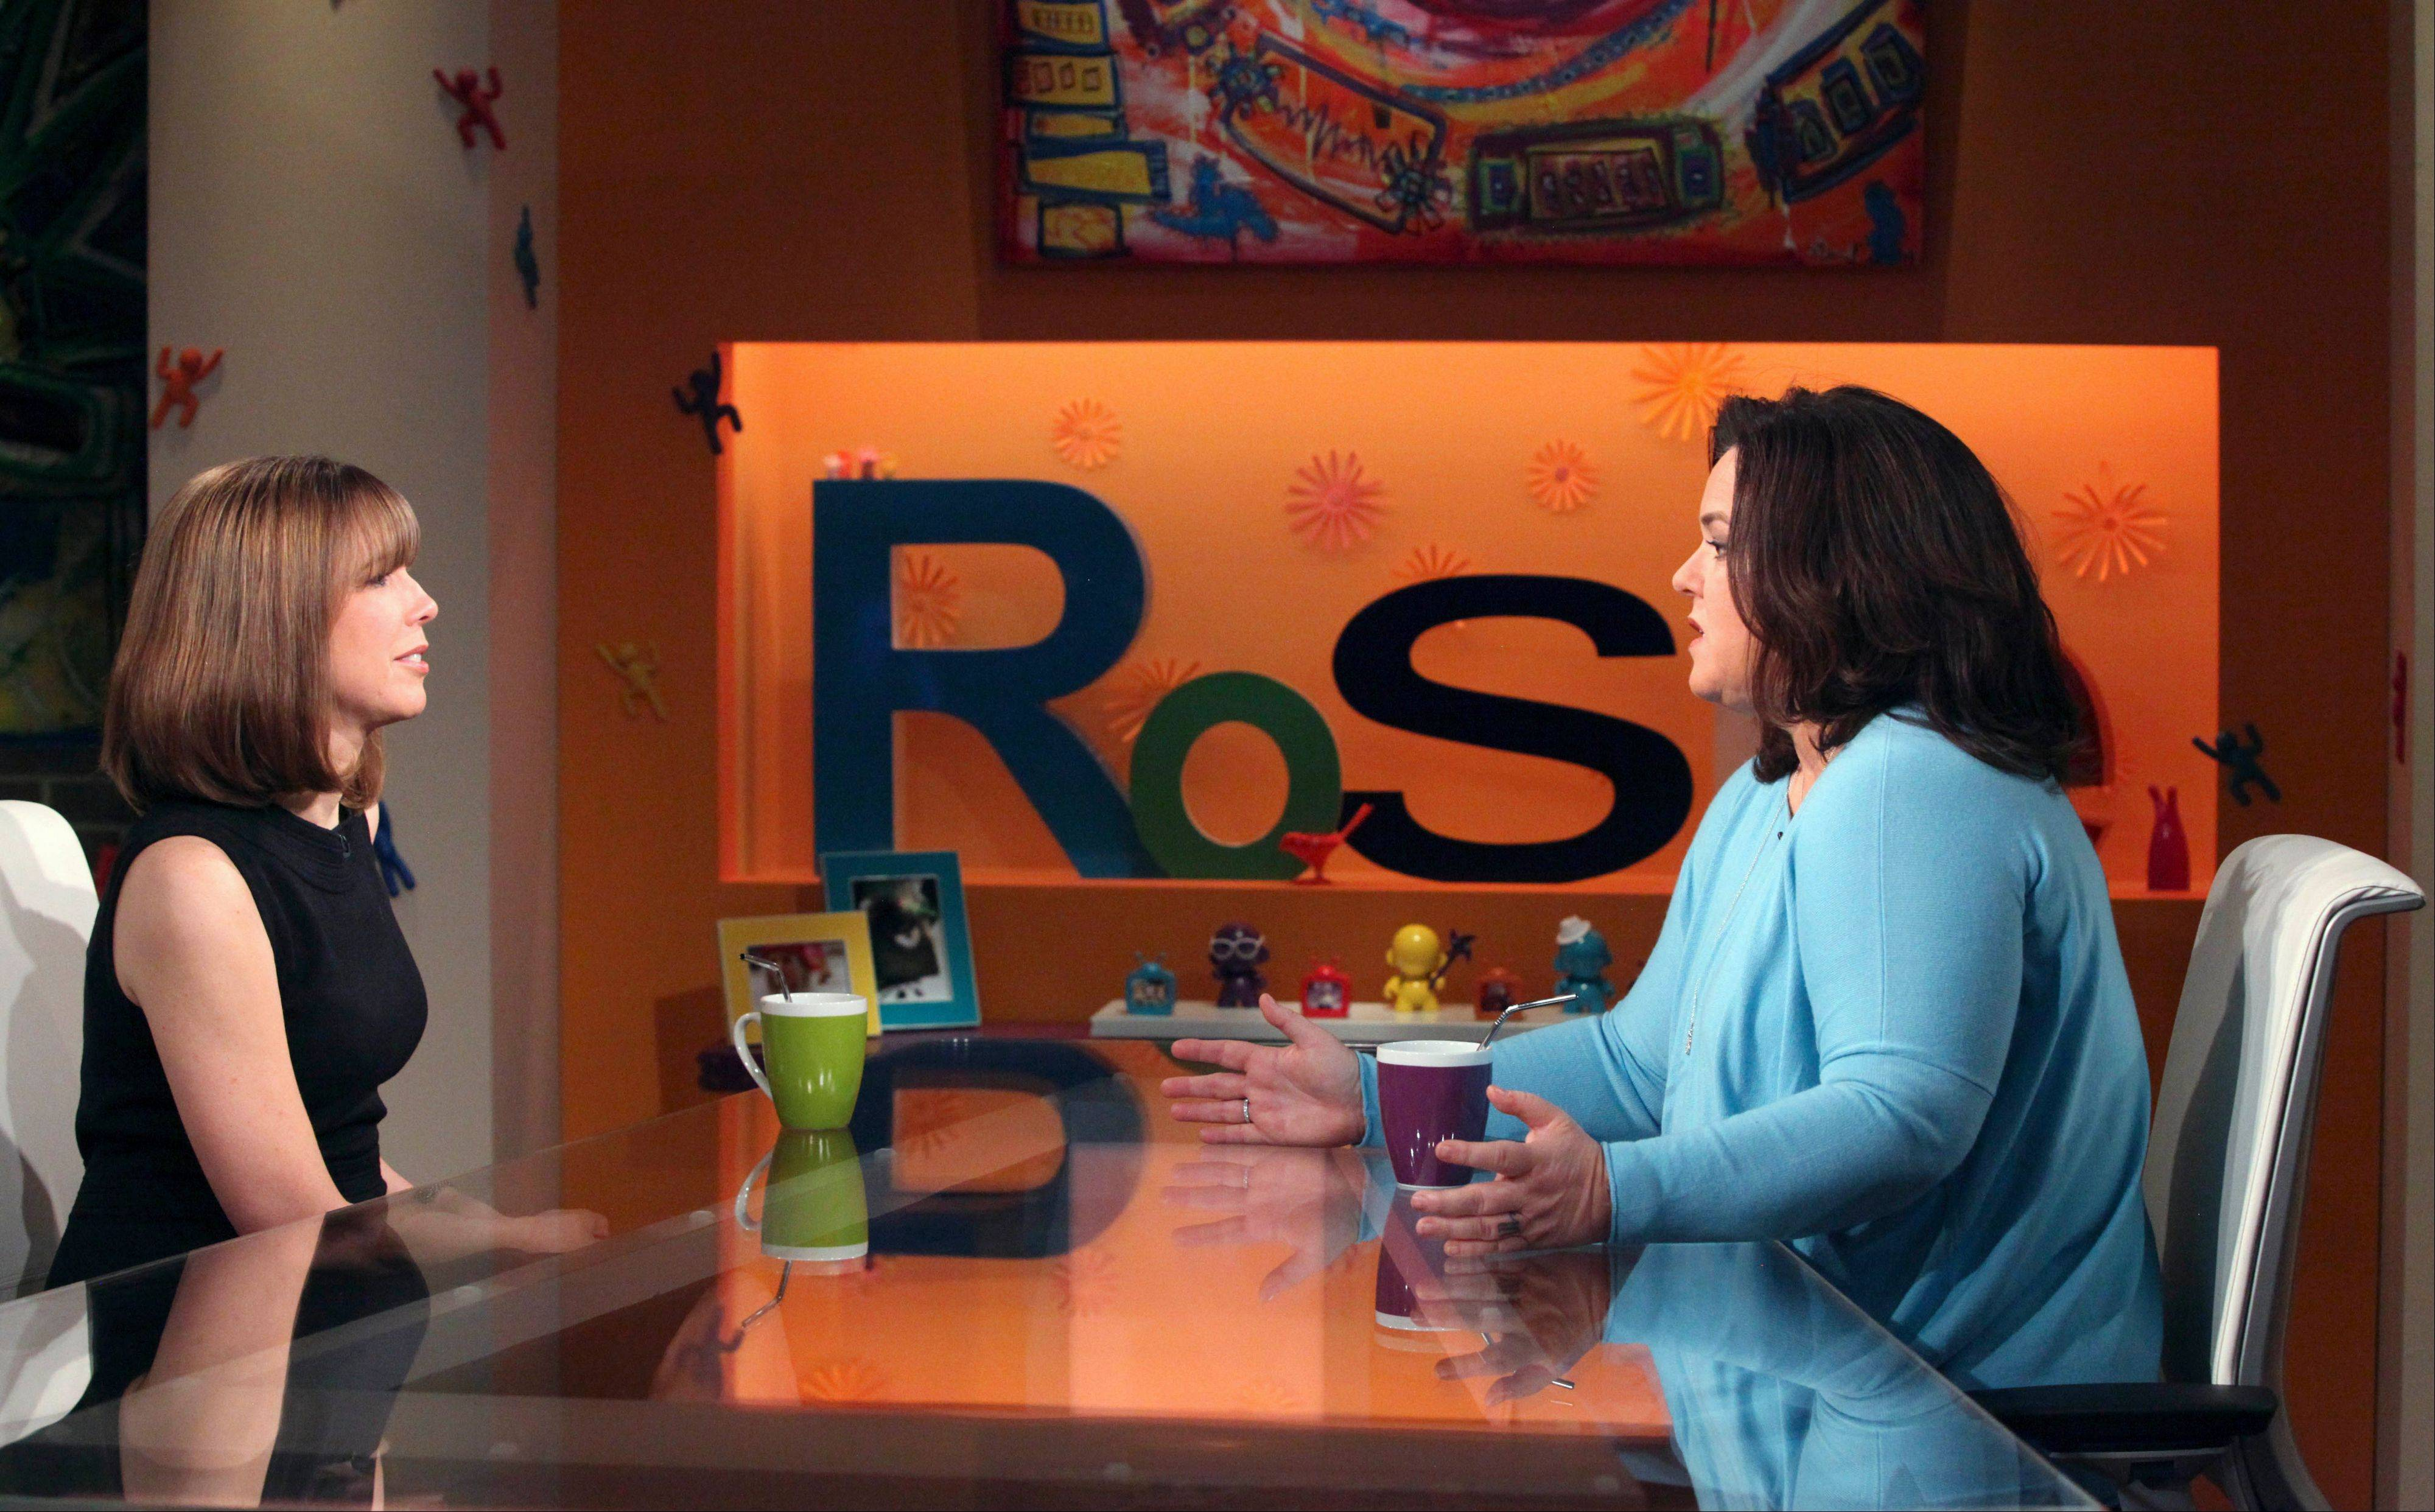 "Talk-show host Rosie O'Donnell interviews former Illinois first lady Patti Blagojevich during a taping of the ""The Rosie Show"" in Chicago. It is her first televised interview since Rod Blagojevich was sentenced to 14 years in prison for corruption."